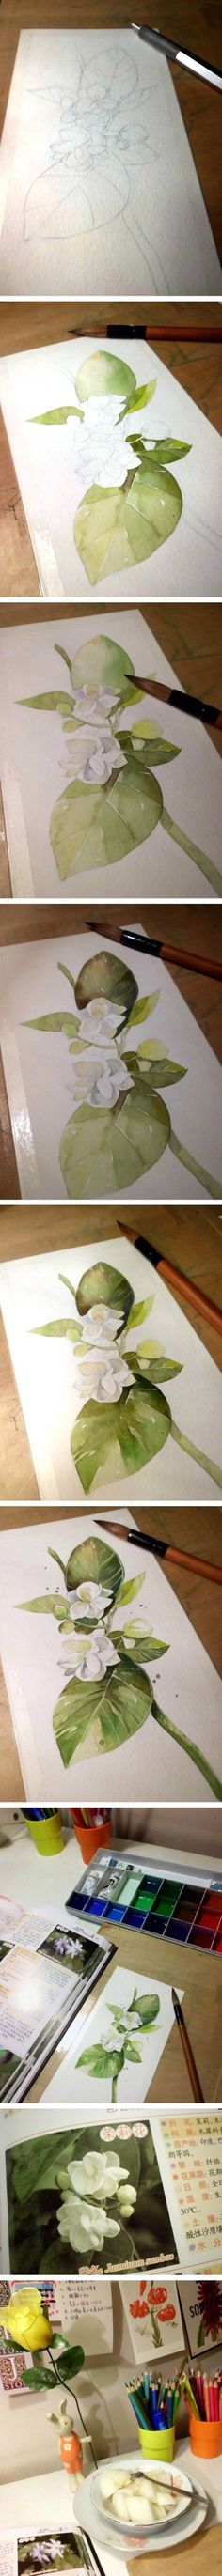 Step by step watercolour of jasmine: